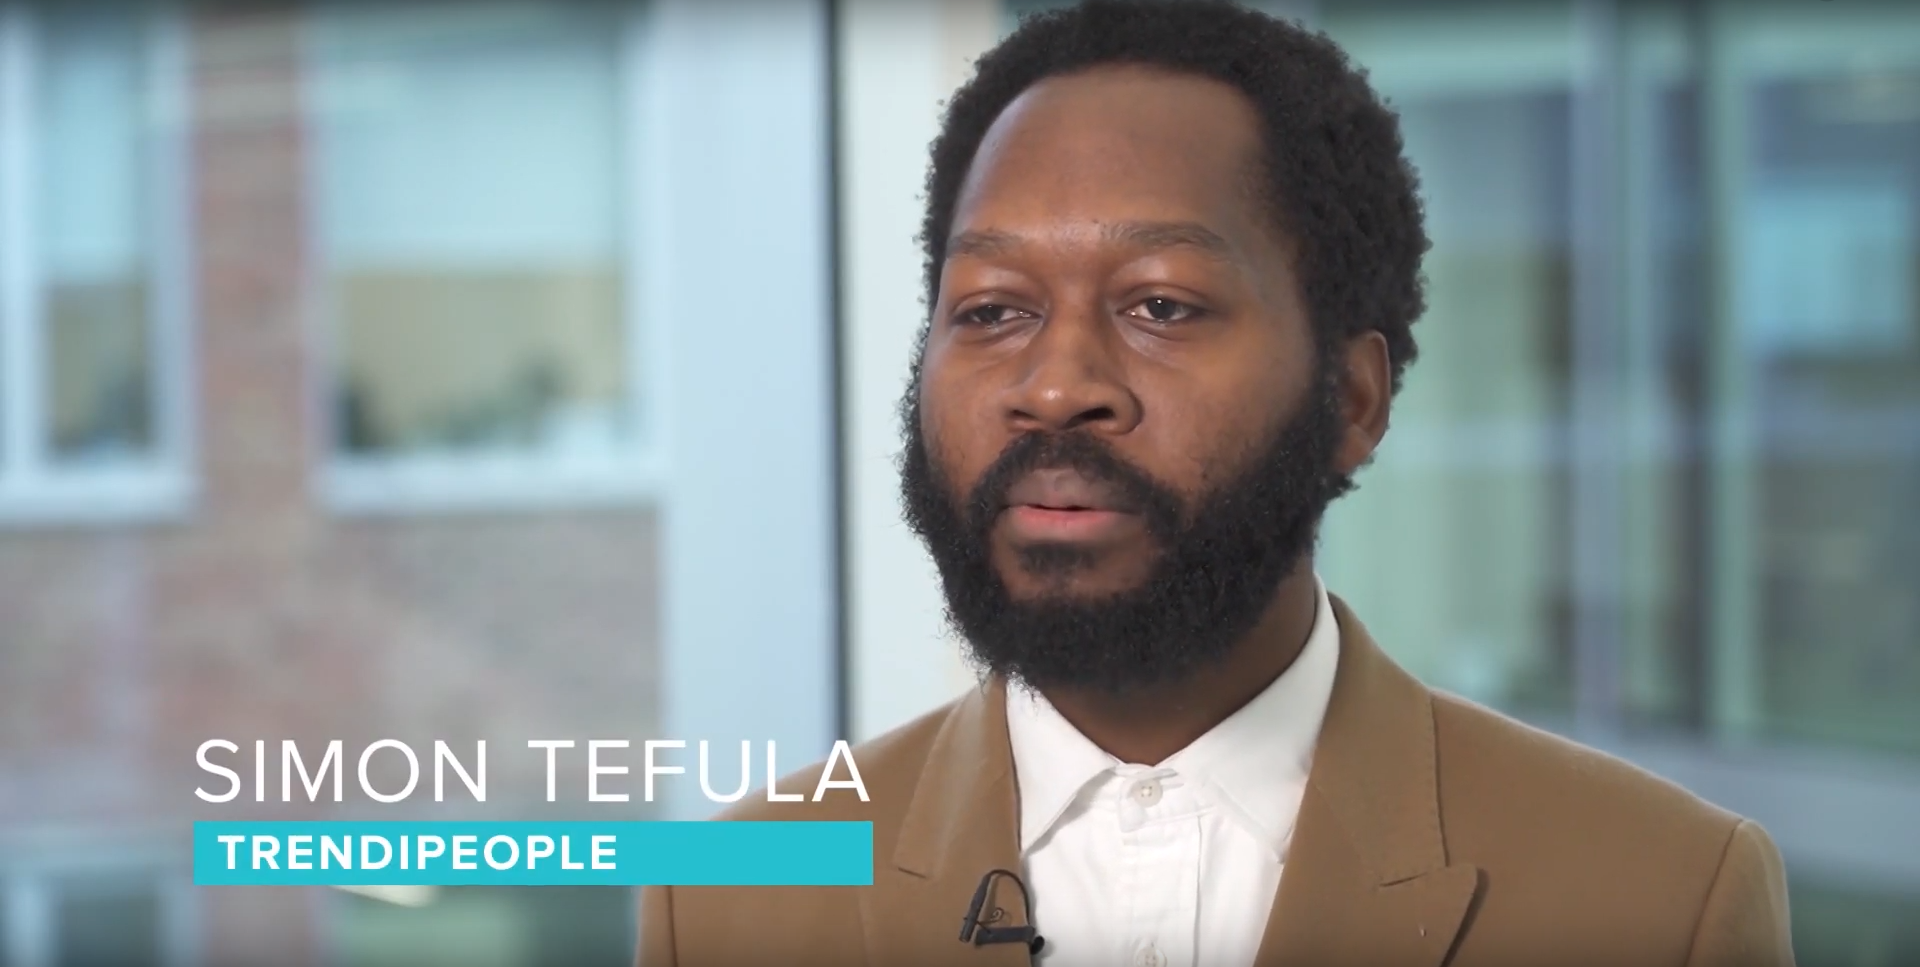 Simon Tefula about Trendipeople